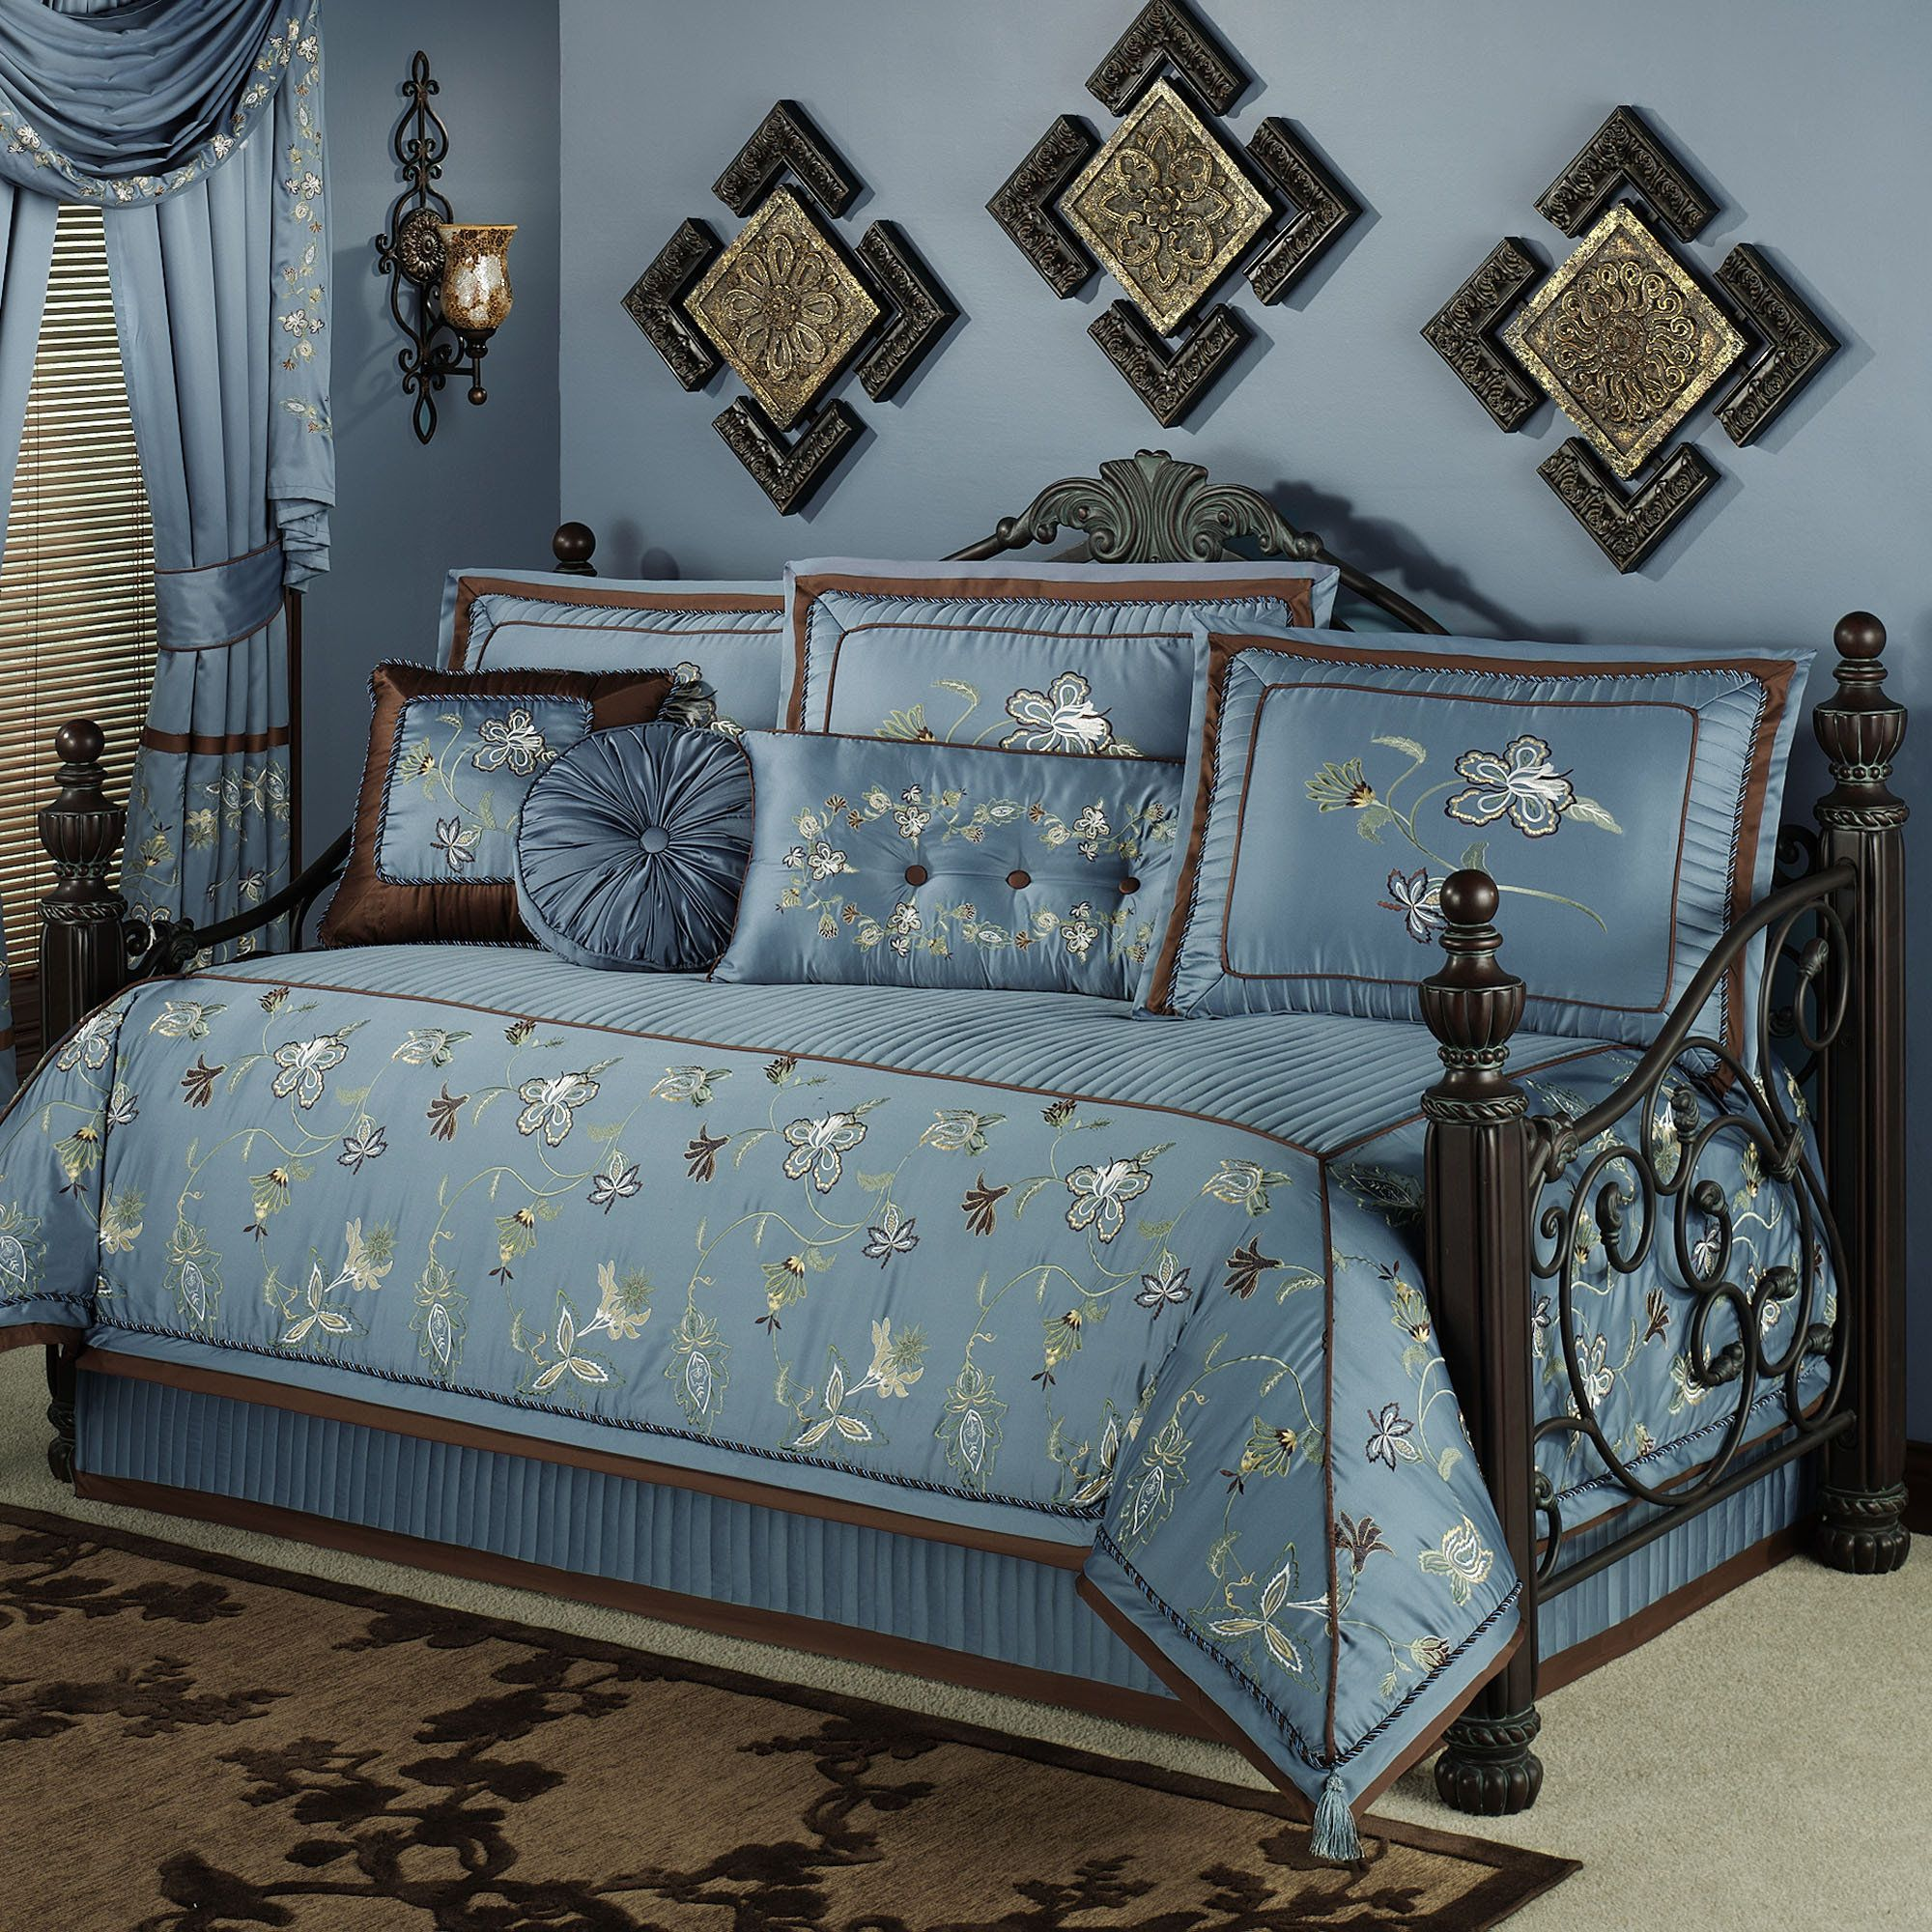 choice daybed comforter sets as decoration in